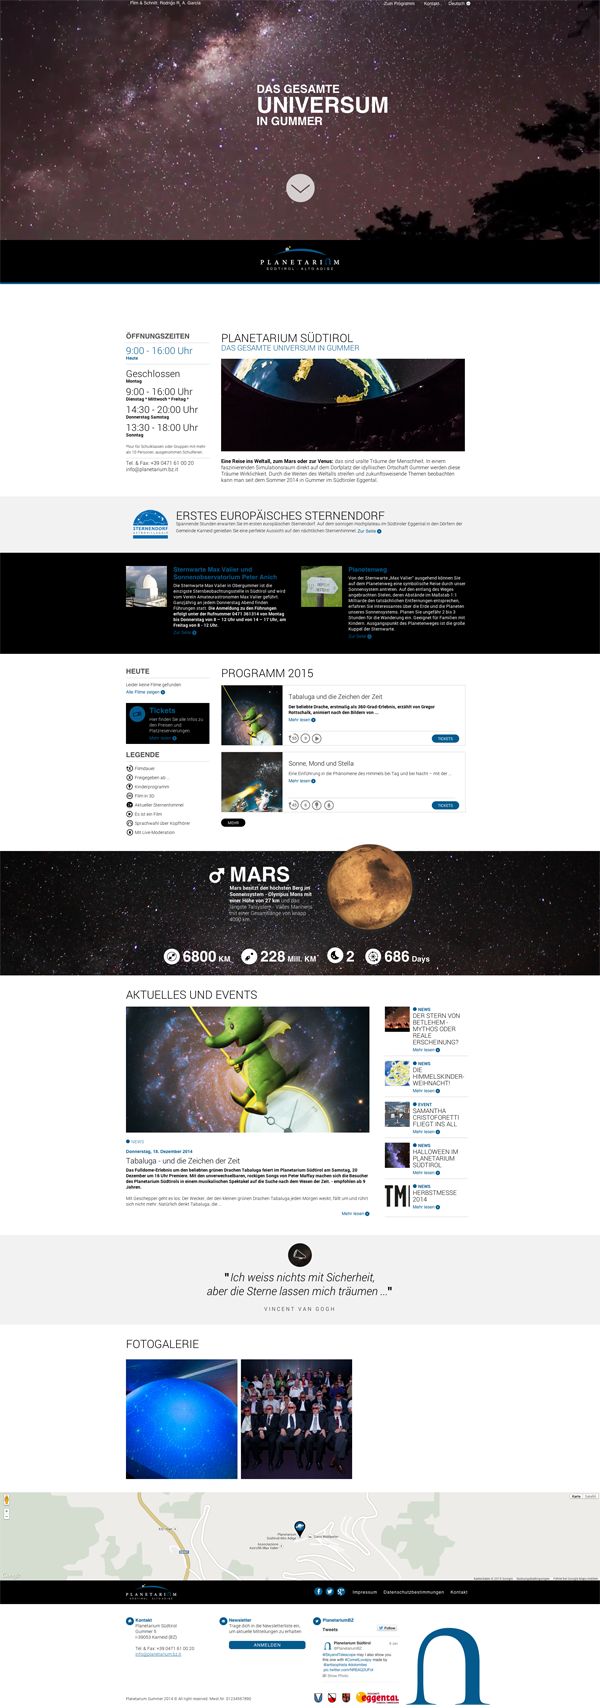 www.planetarium.bz.it